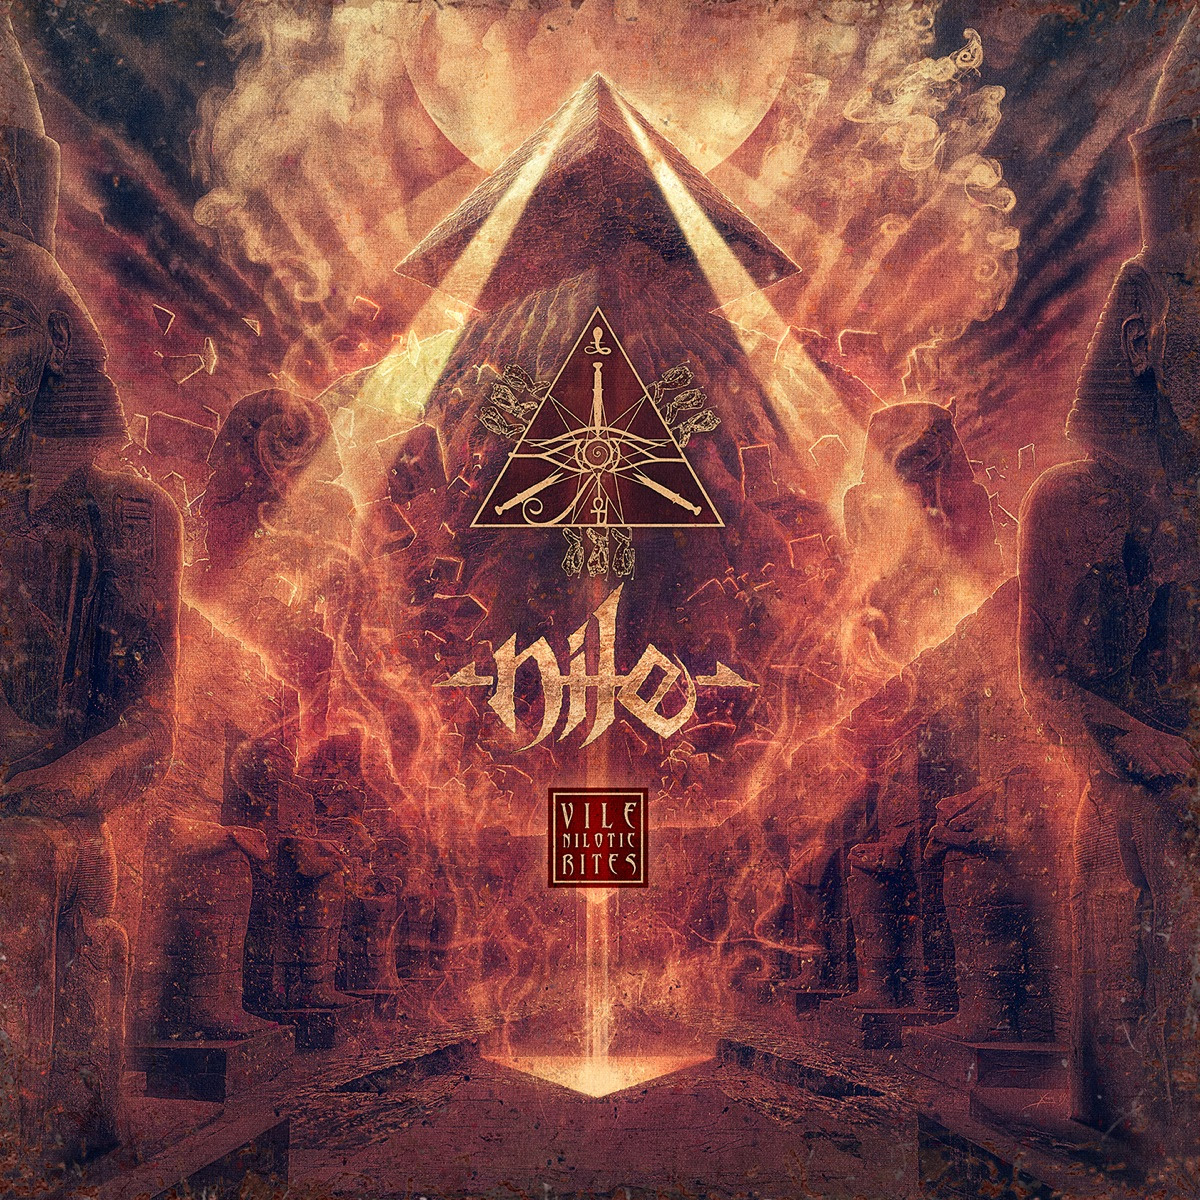 Nile - Vile Nilotic Rites - Cover